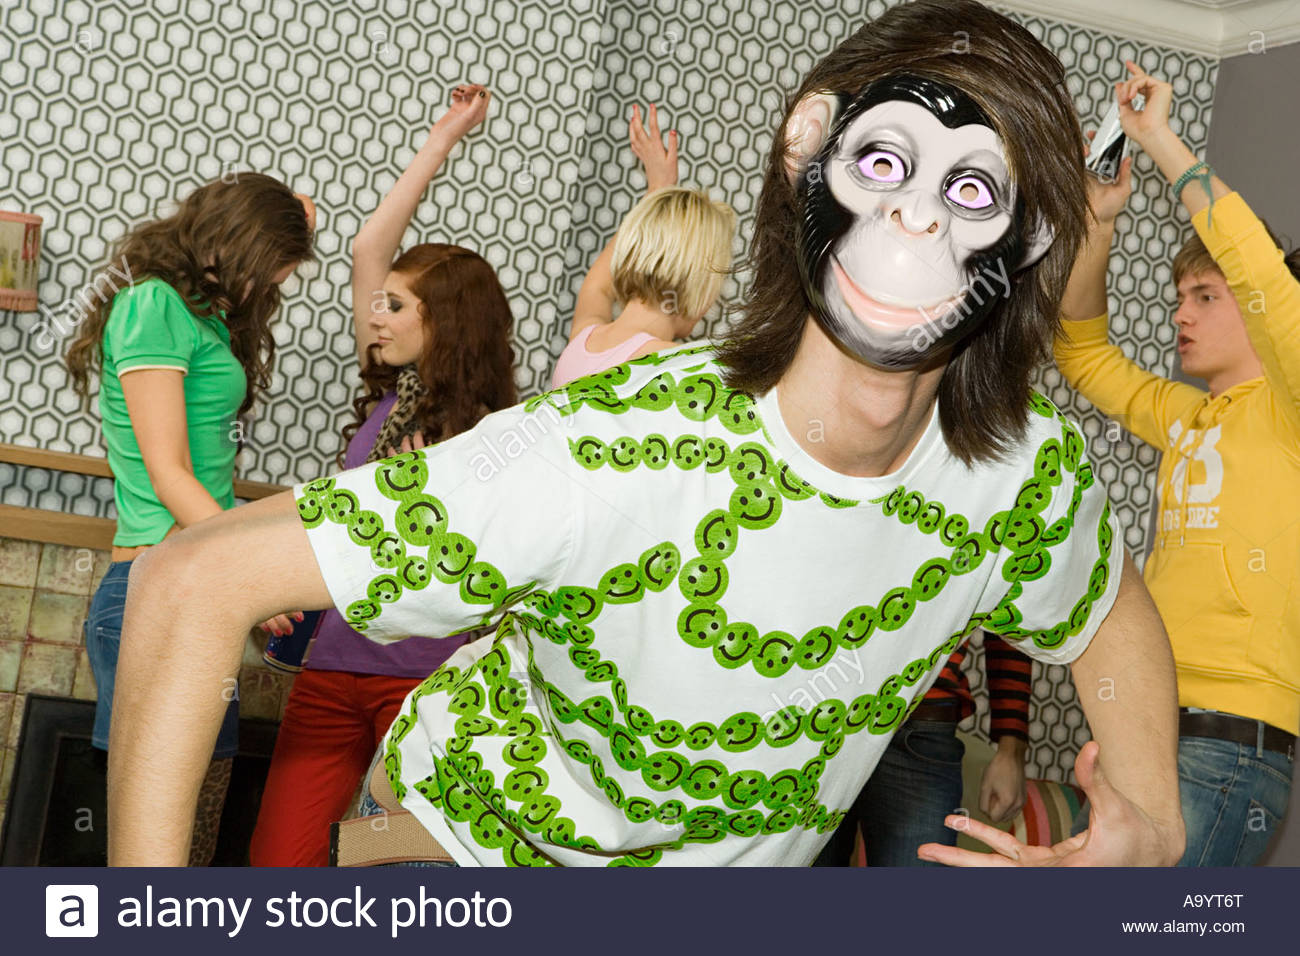 People dancing at a house party - Stock Image